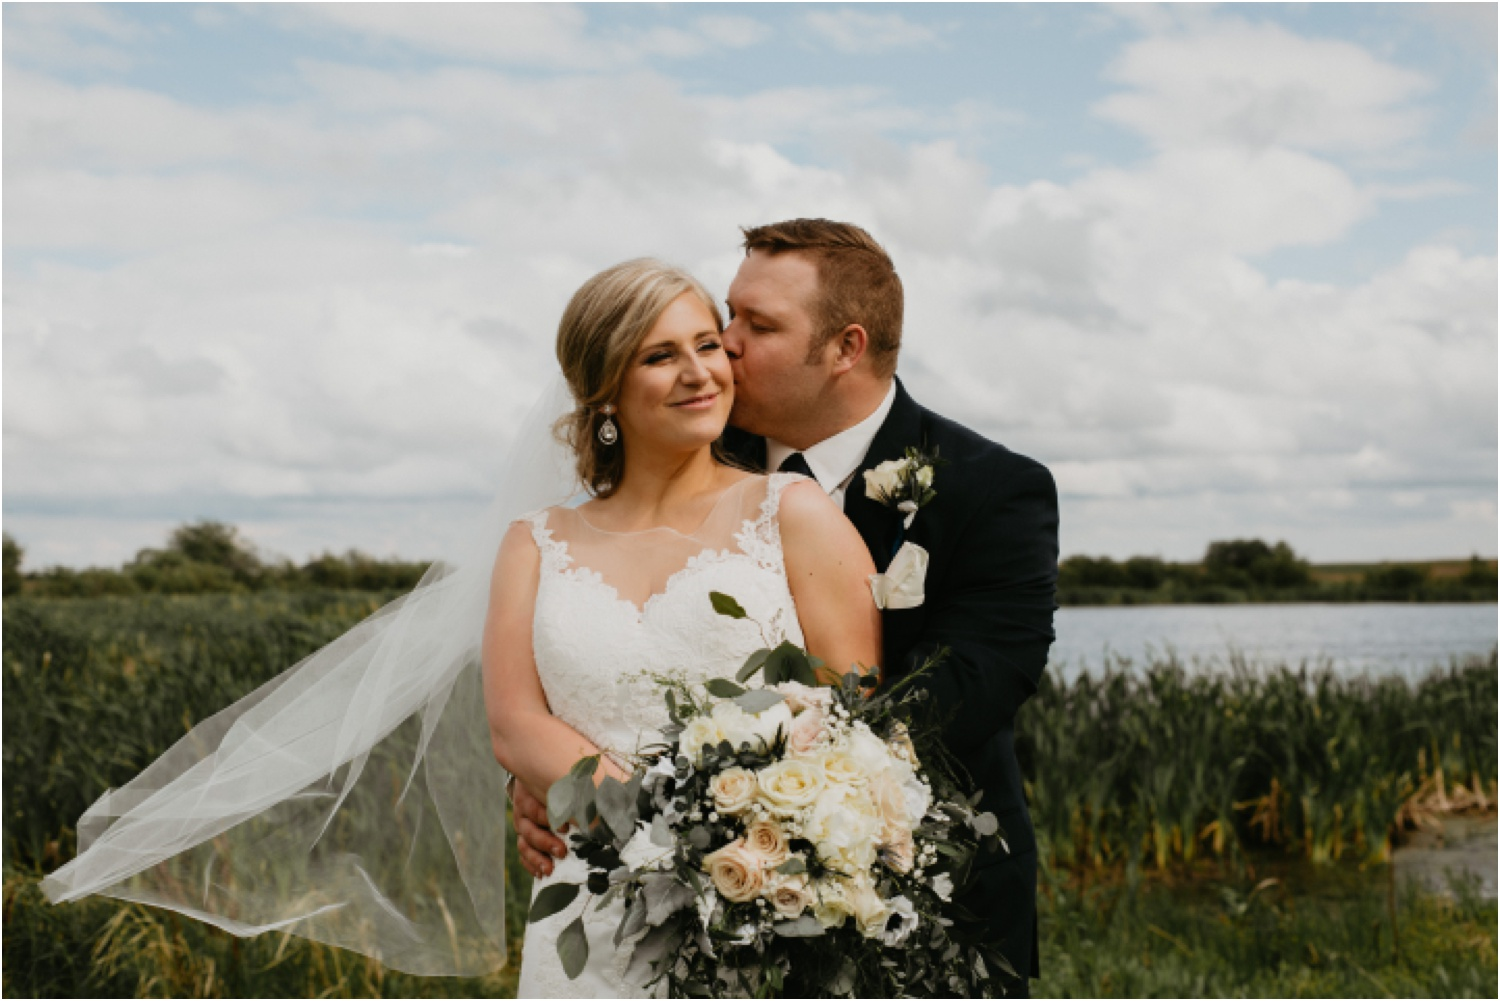 Kailey_Carter_Saskatchewan_Wedding (323 of 727).jpg